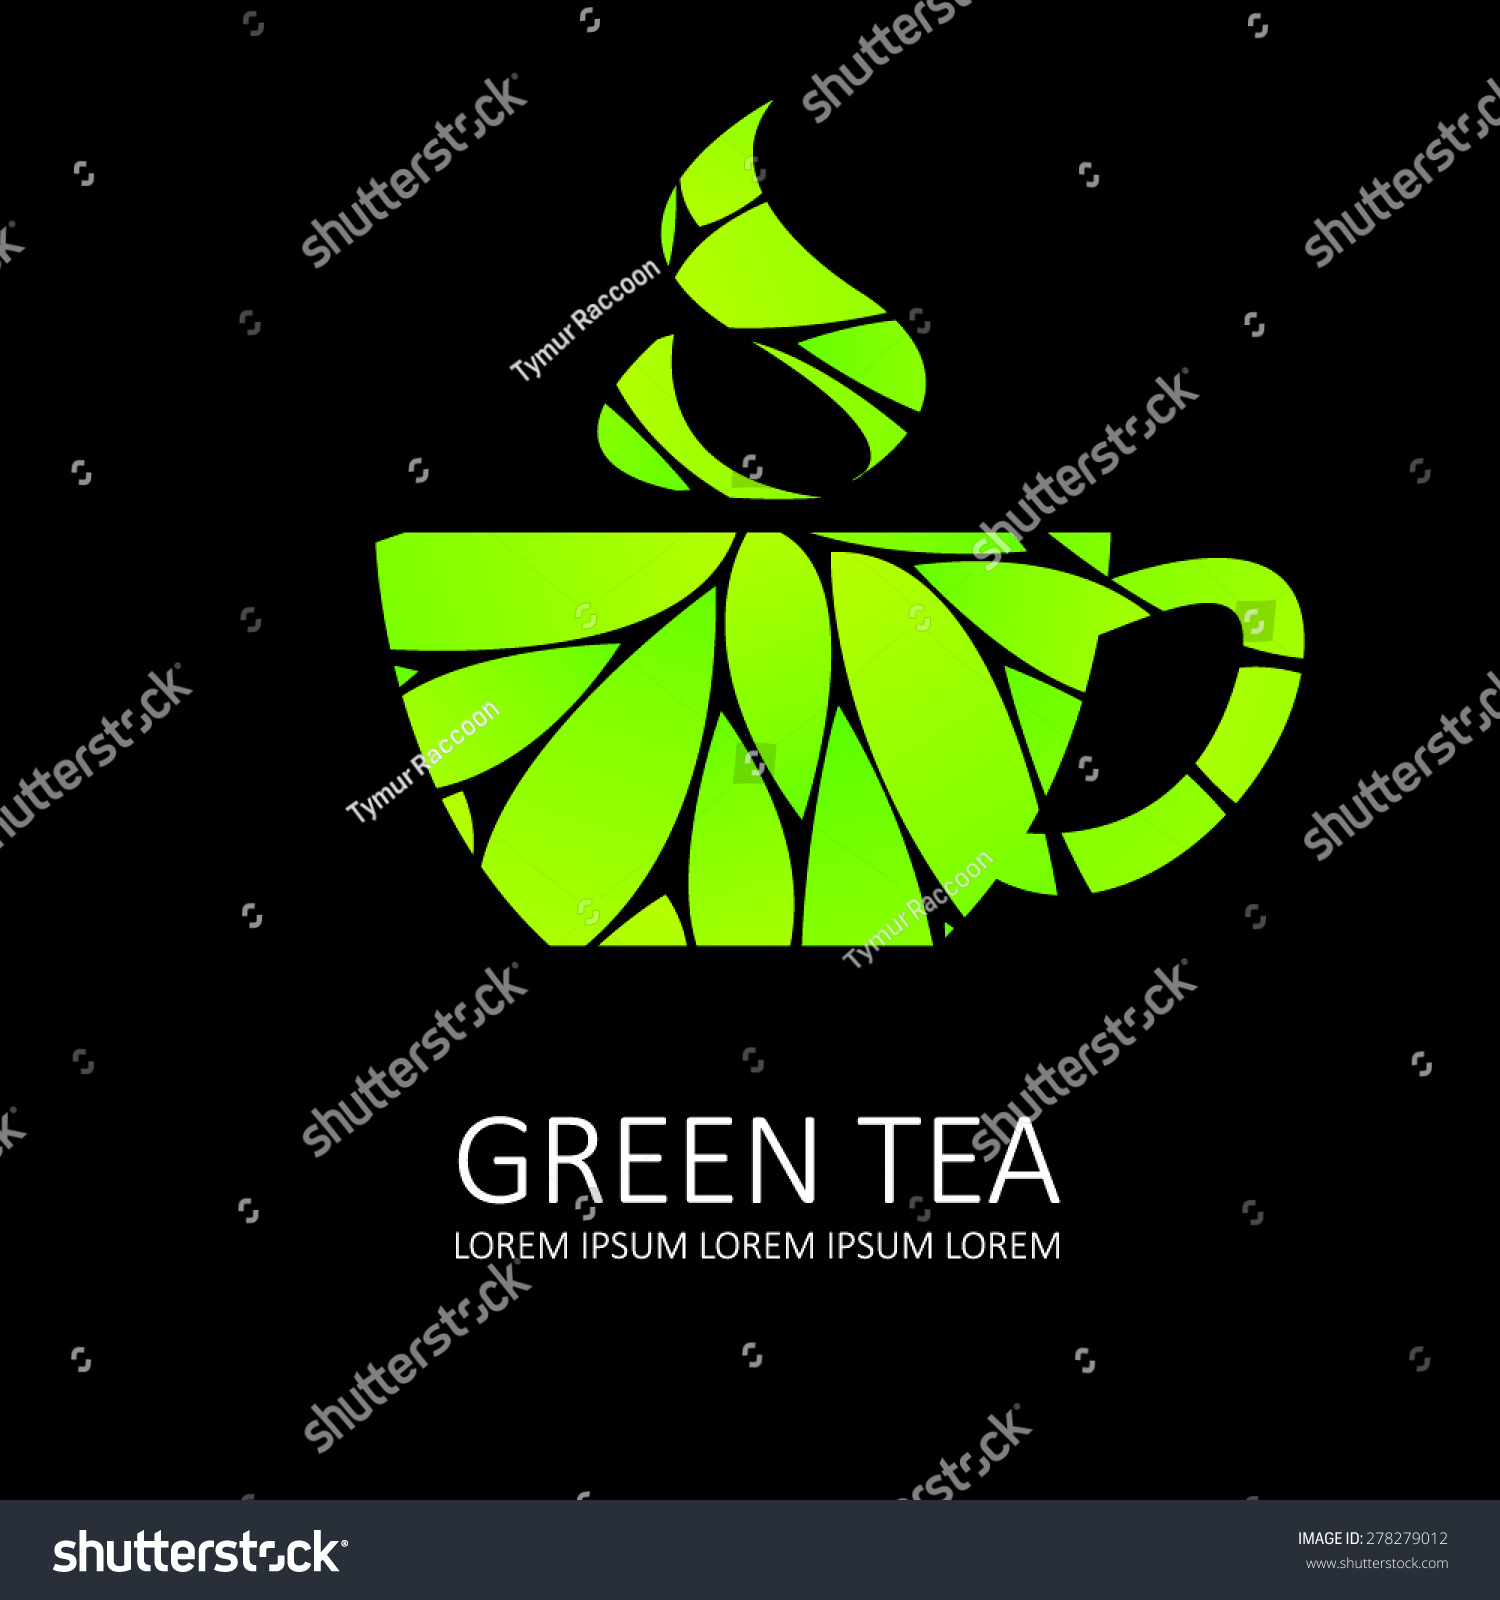 green tea icon black background stock vector royalty free 278279012 https www shutterstock com image vector green tea icon black background 278279012